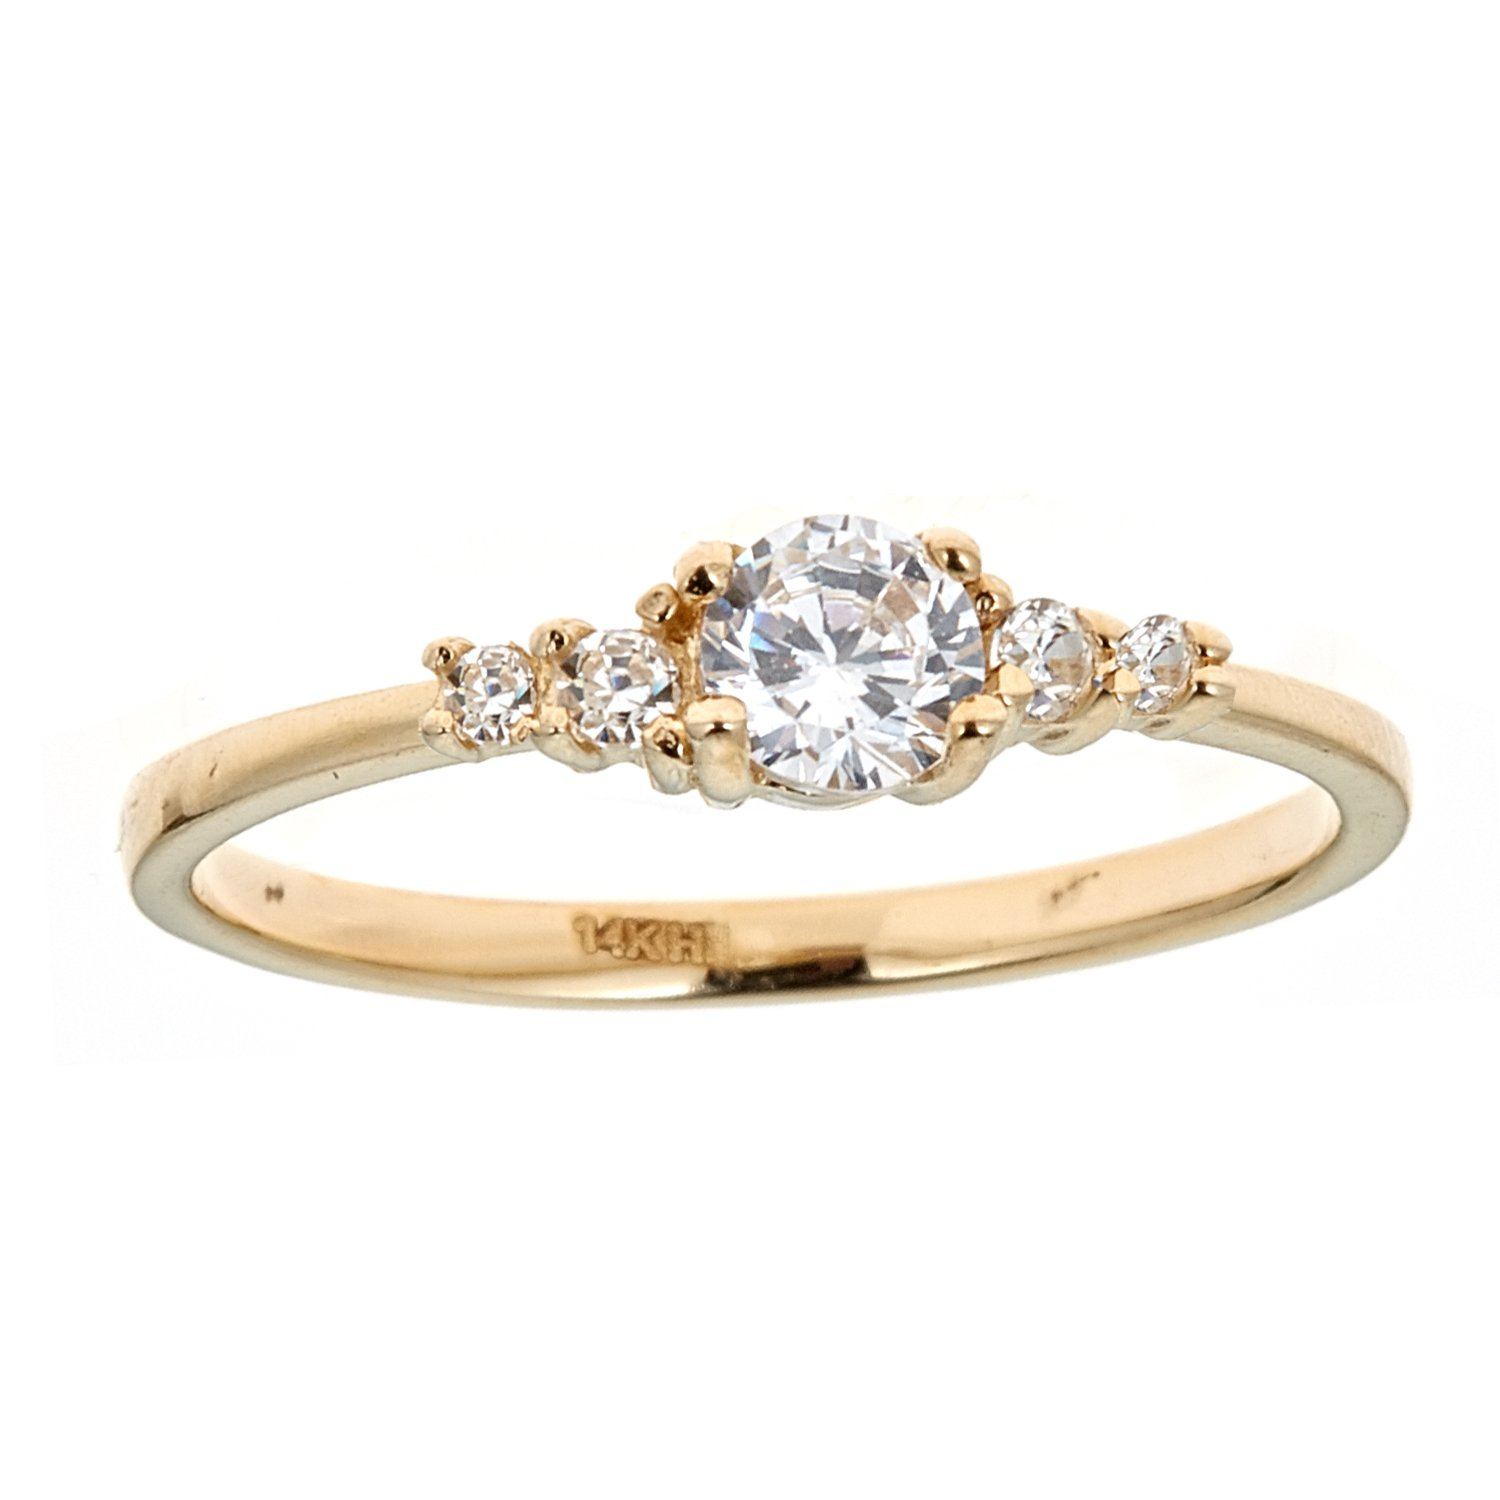 Ritastephens 14K Yellow Gold White Cubic Zirconia Girls Ring Small Band Size 3